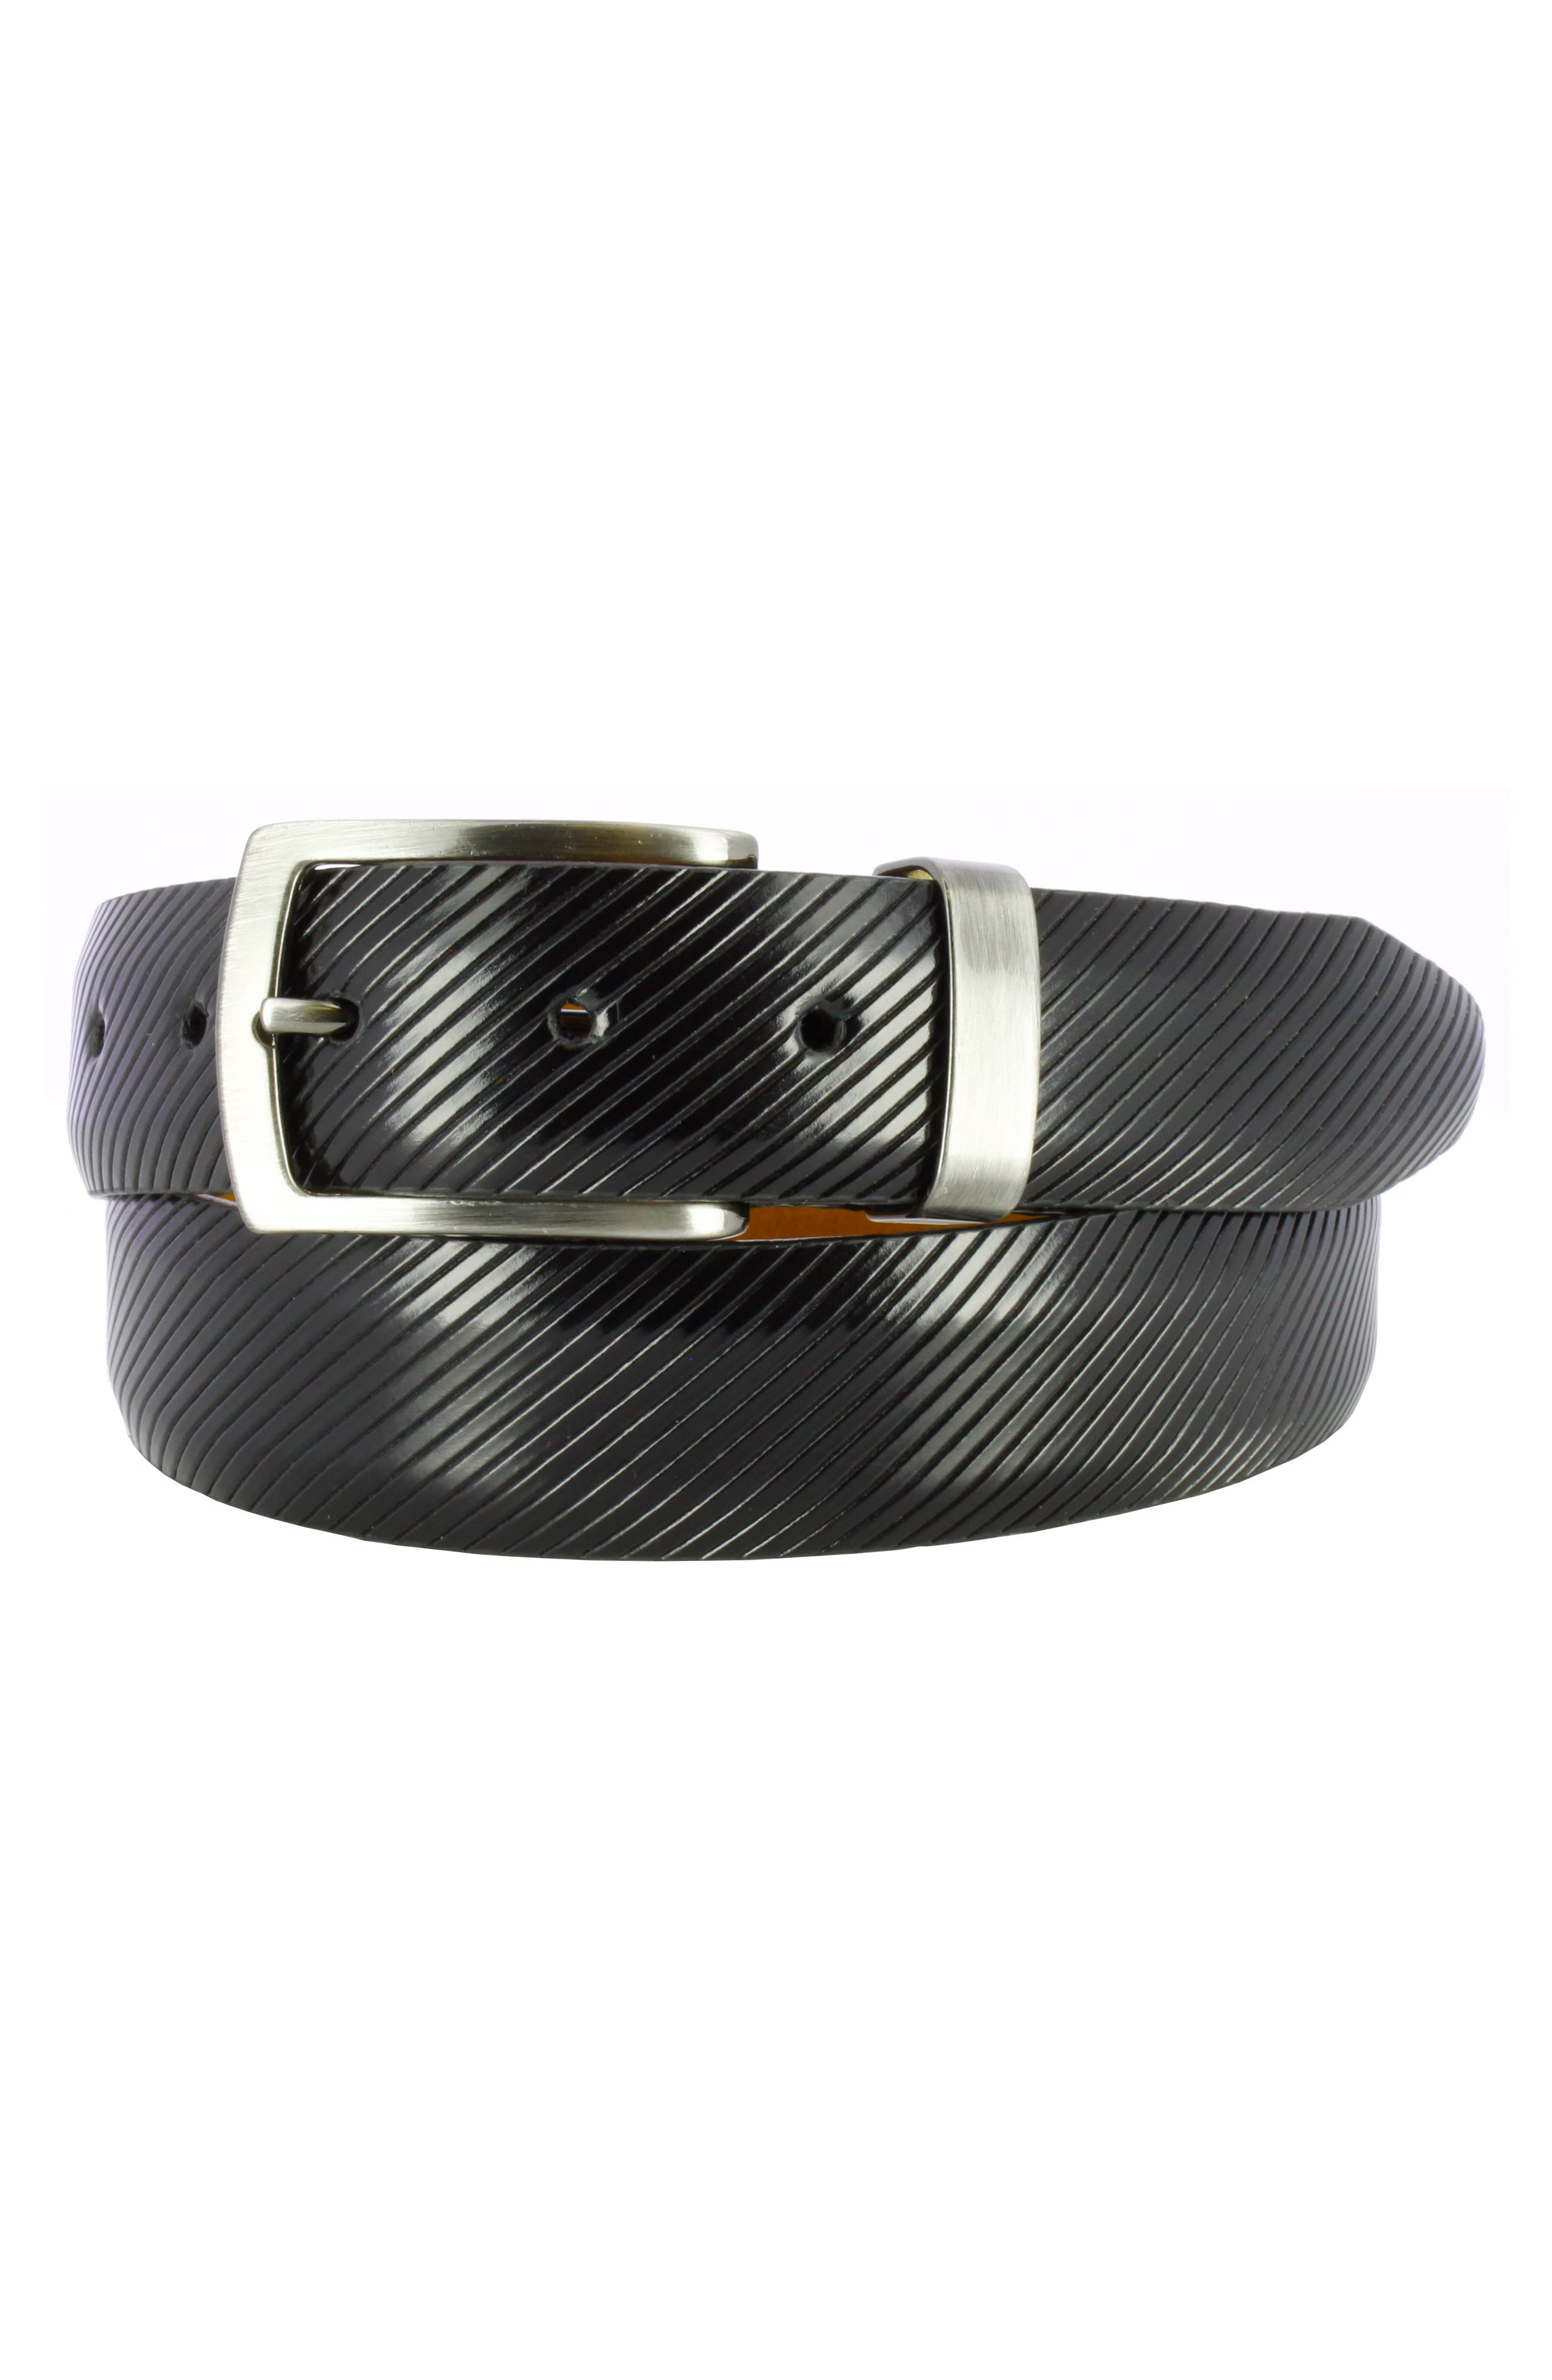 Sylvio Millerighe Leather Belt,                         Main,                         color, ONYX